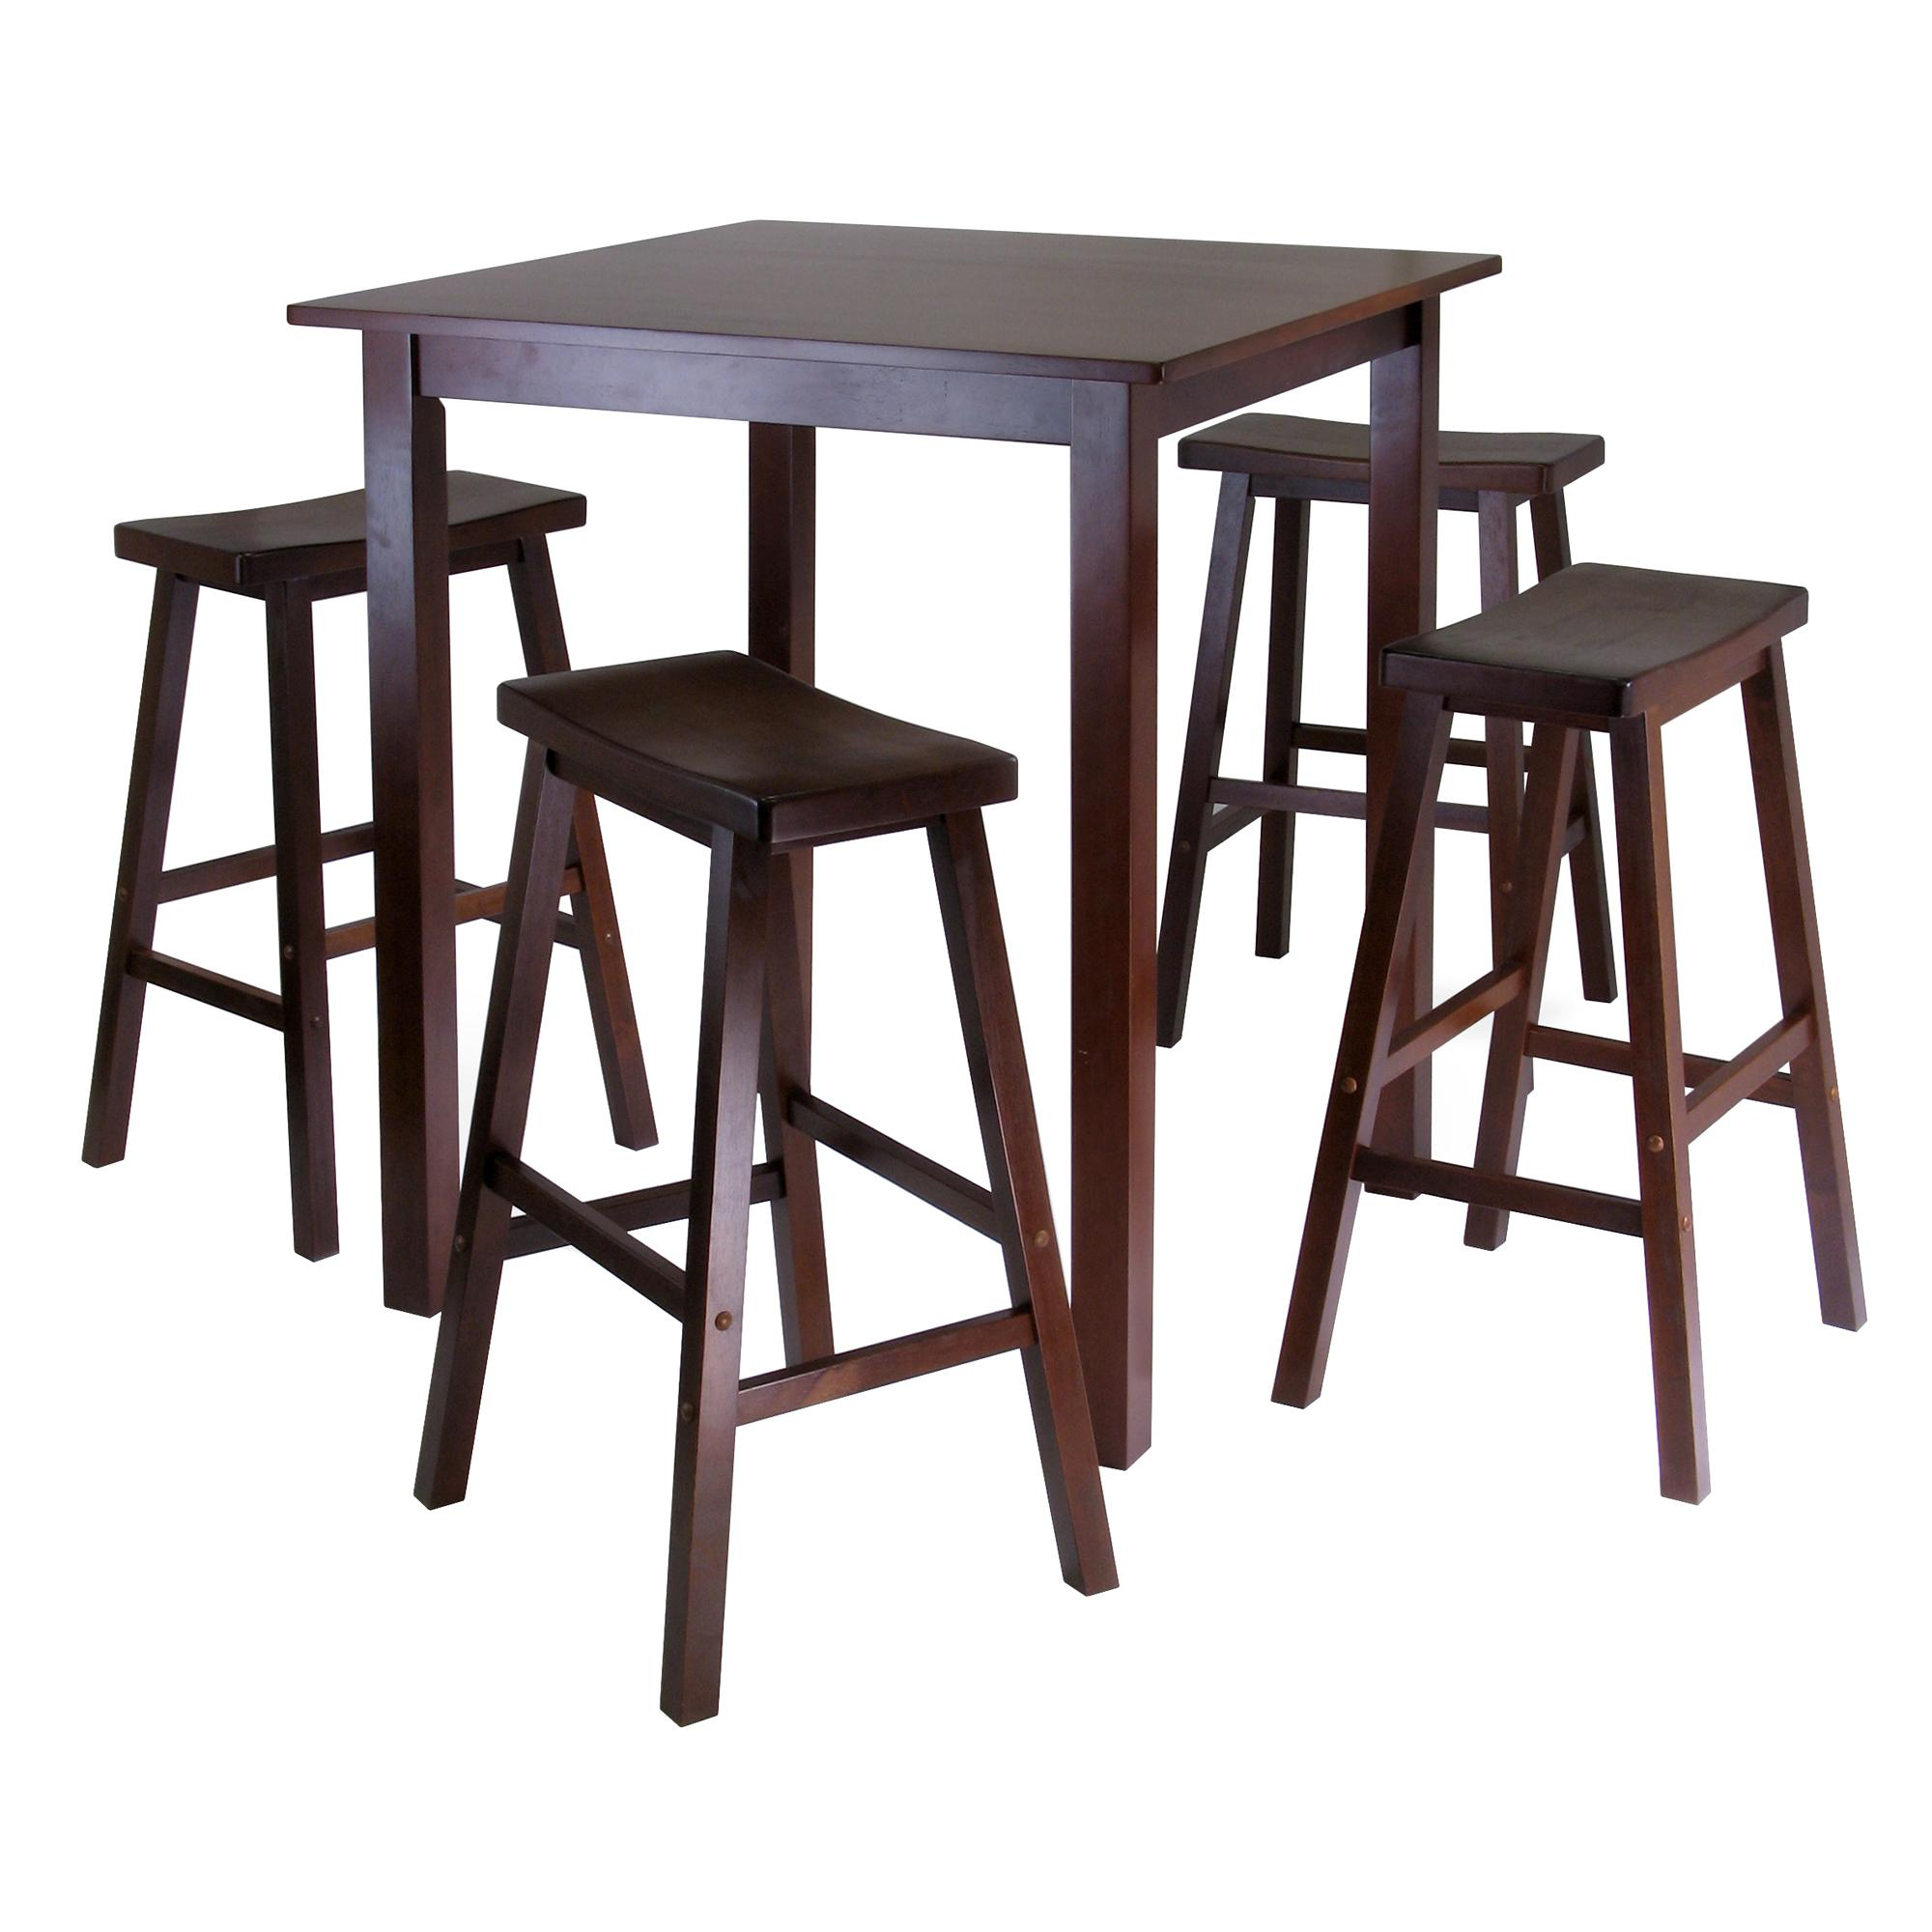 Kitchen Table And Chairs Amazon: Amazon.com: Winsome's Parkland 5-Piece Square High/Pub